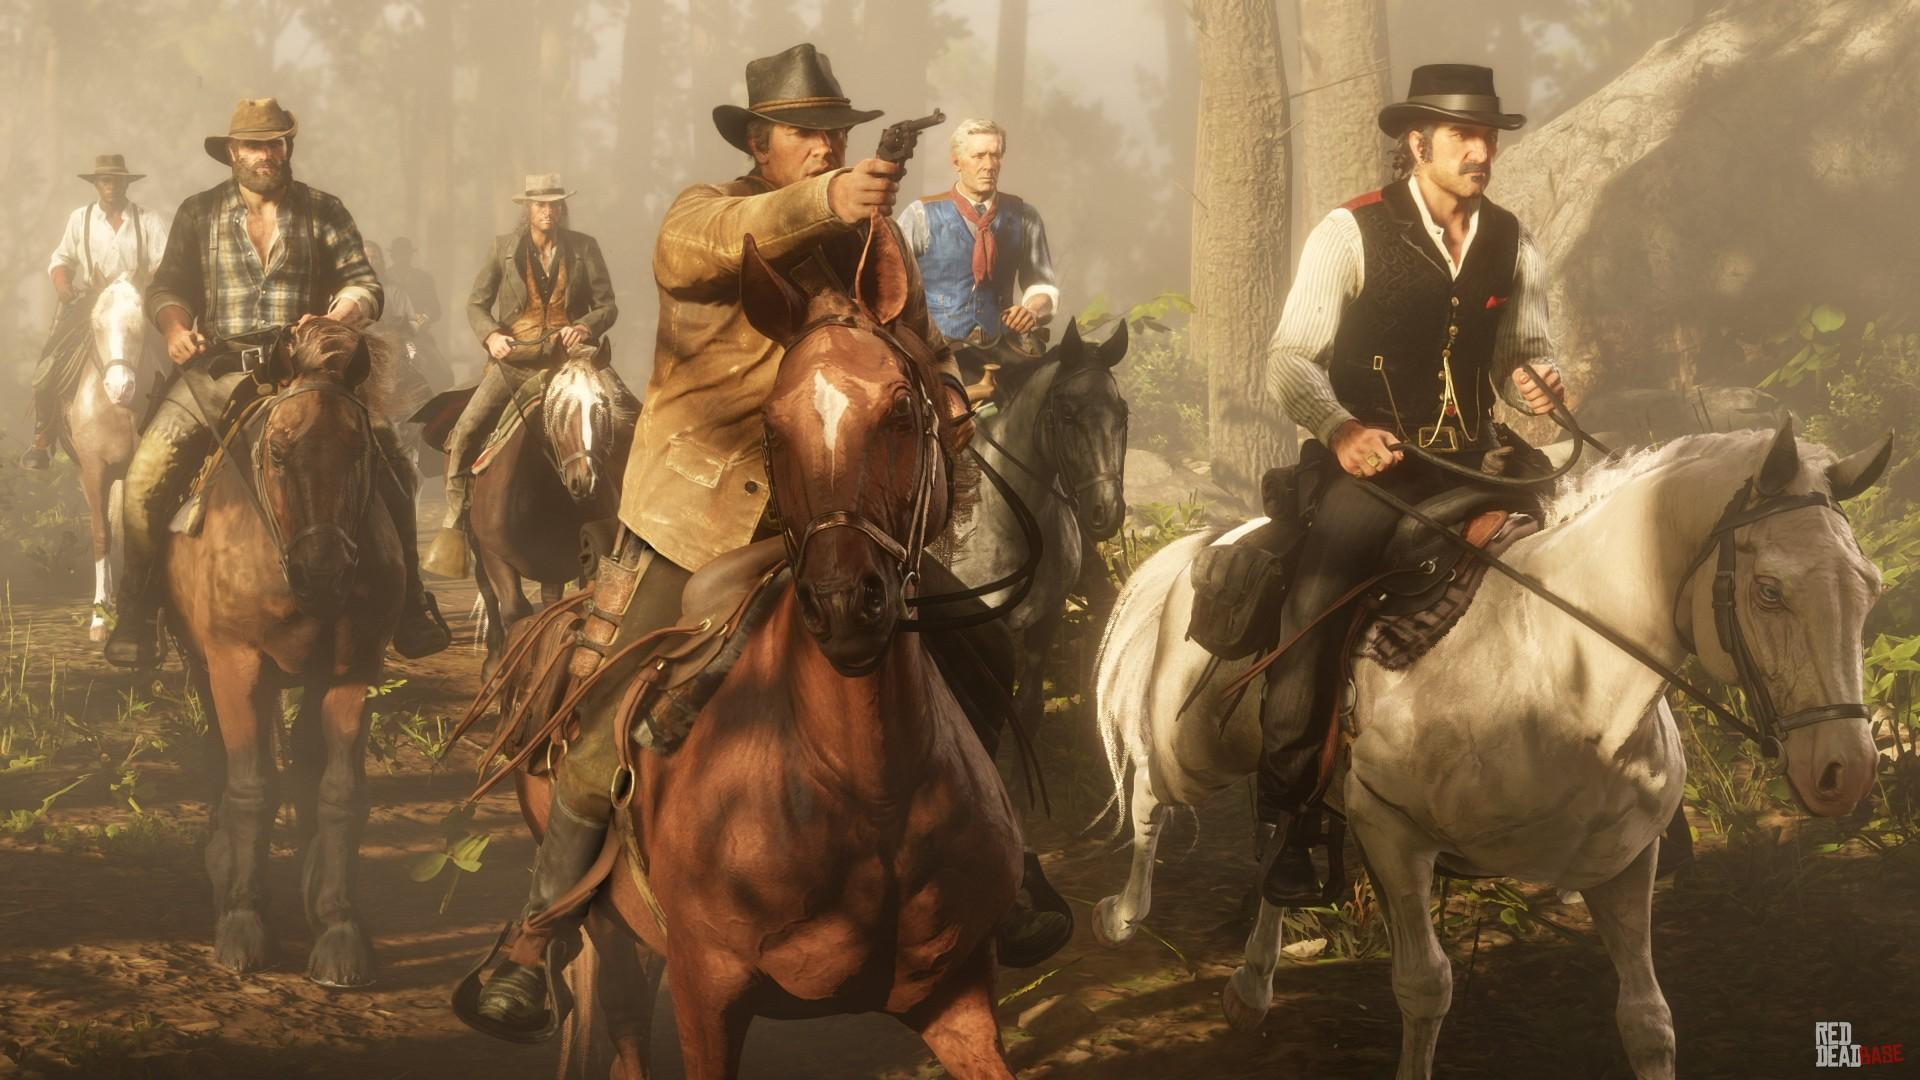 RDR2 HandsOnPreviews 44 ArthurMorgan Dutch JohnMarston BillWilliamson Hosea Matthews Lenny Summers DutchGang Horse